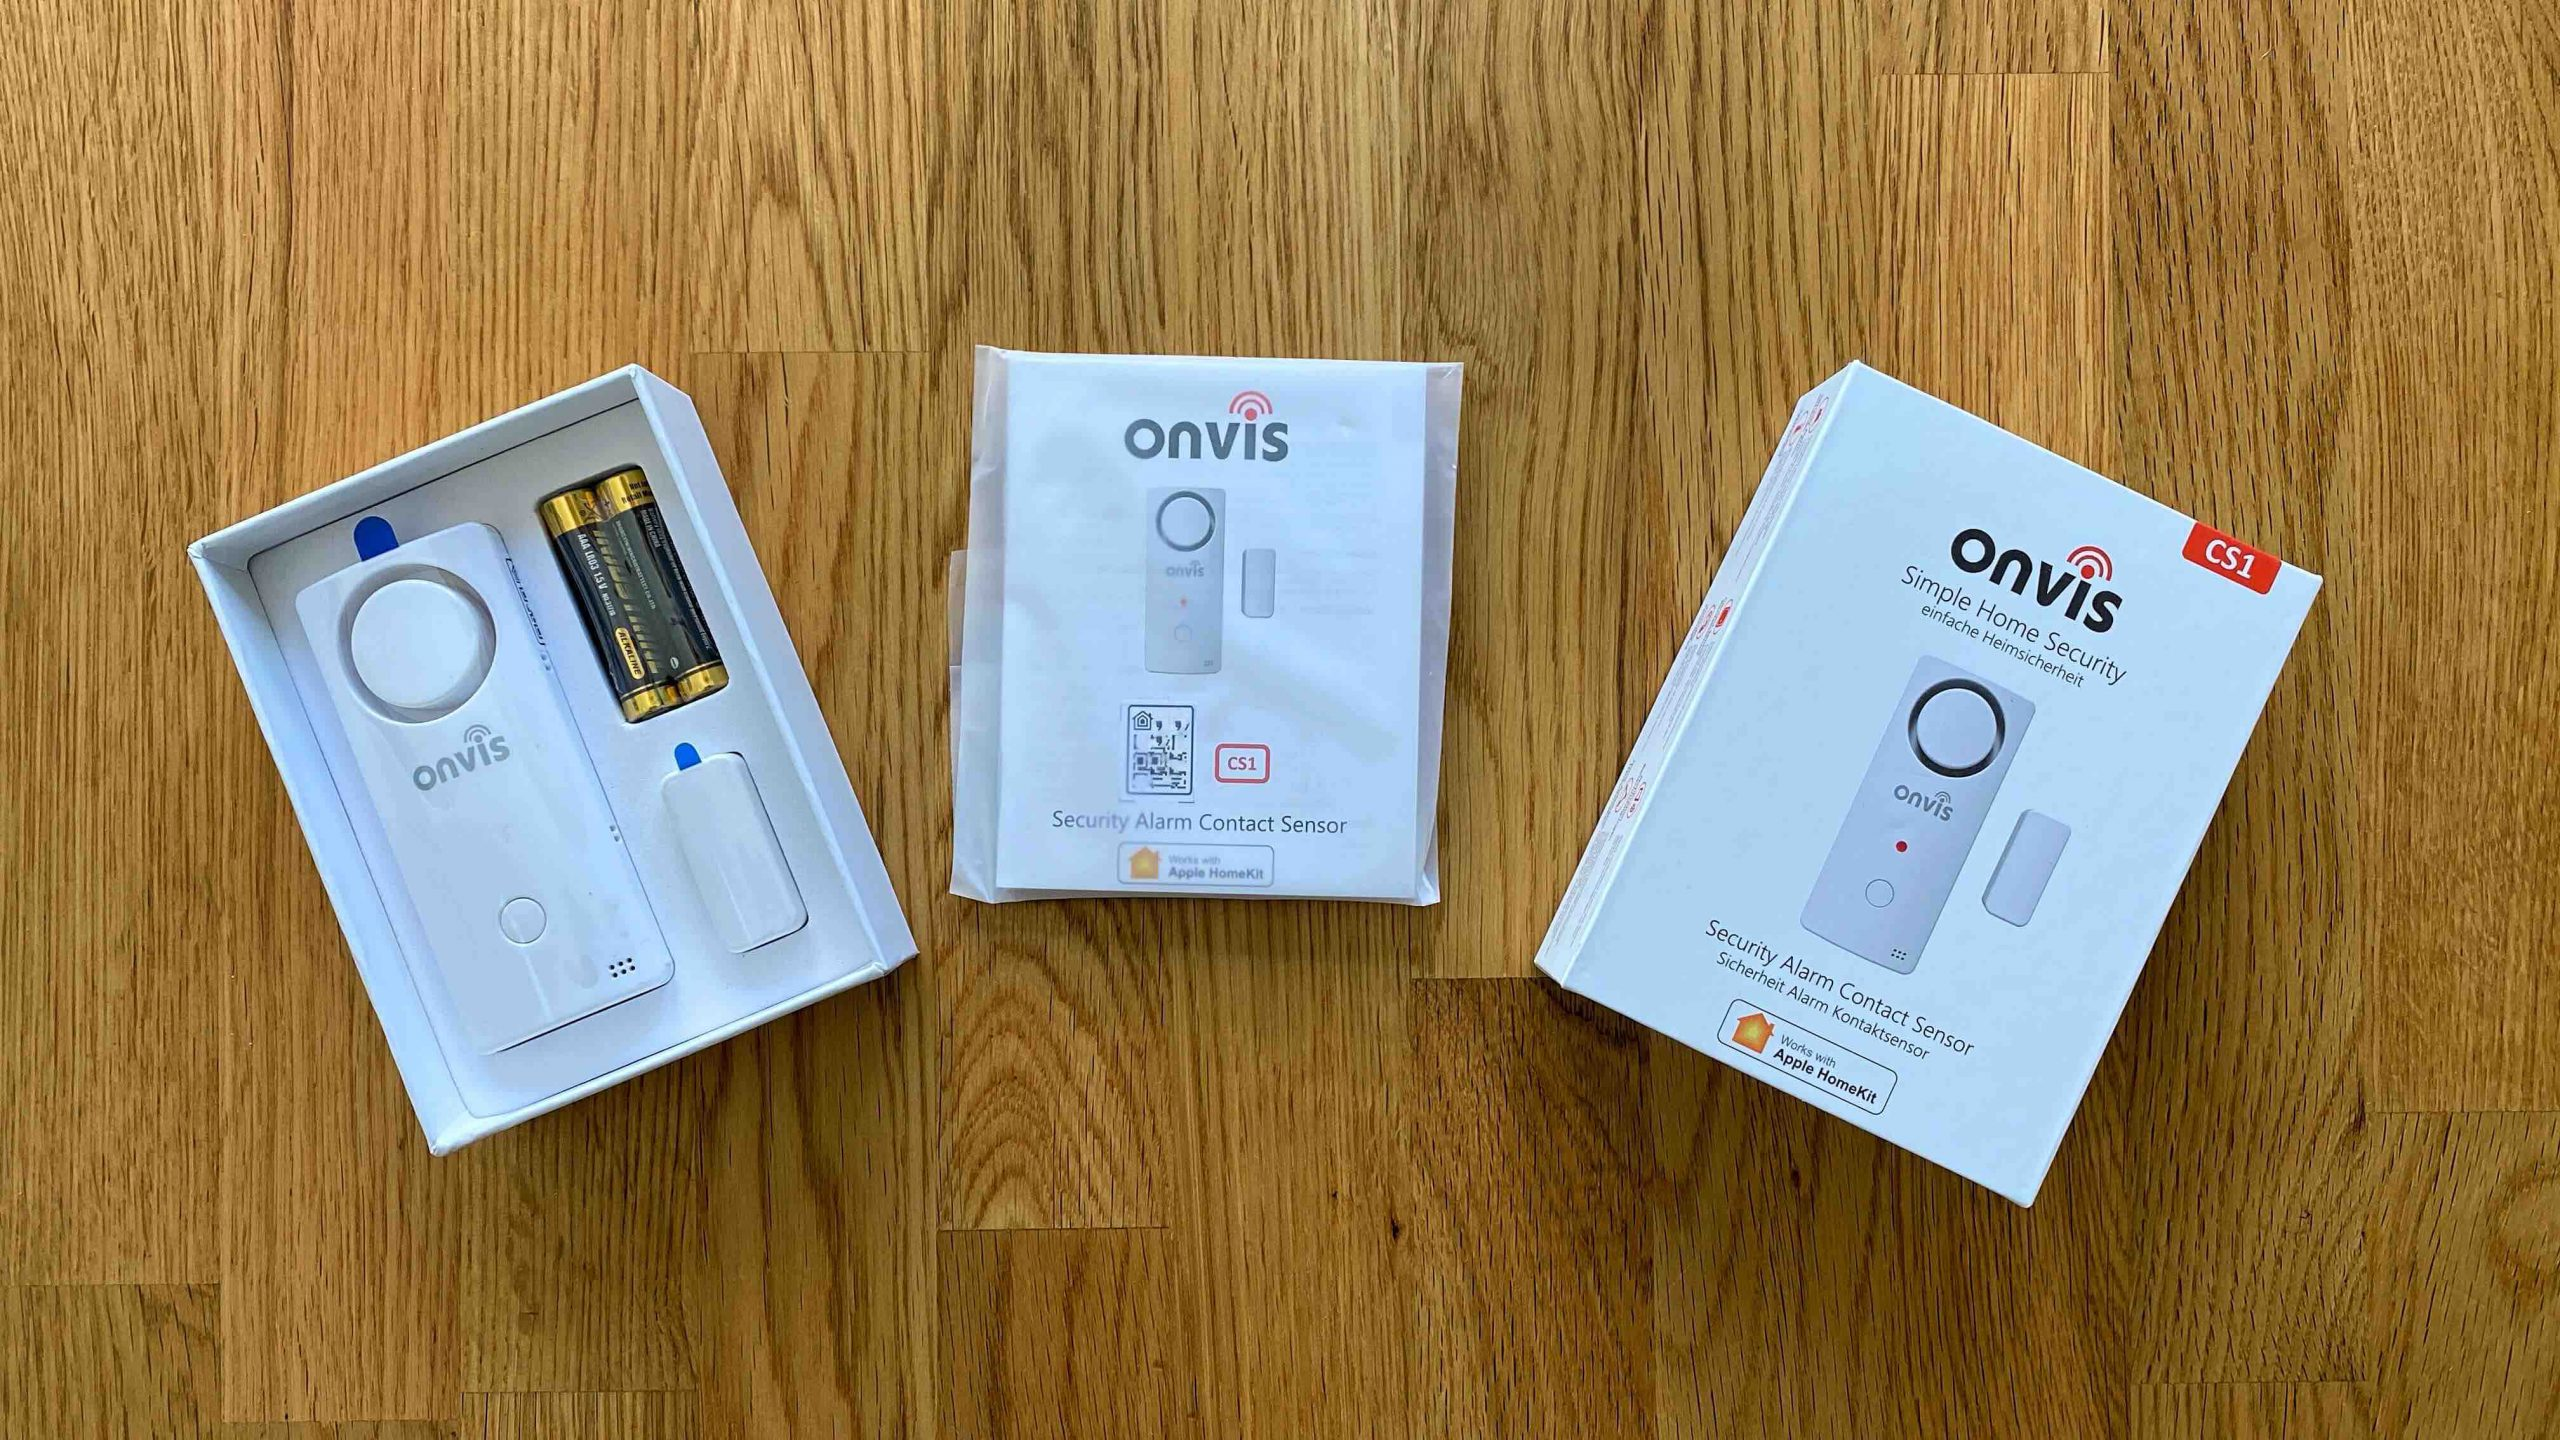 Onvis_CS1_Apple_HomeKit_Sensor_Alarmanlage_Kontaktsensor2-scaled Onvis CS1 - das Sensormeisterwerk mit Apple HomeKit